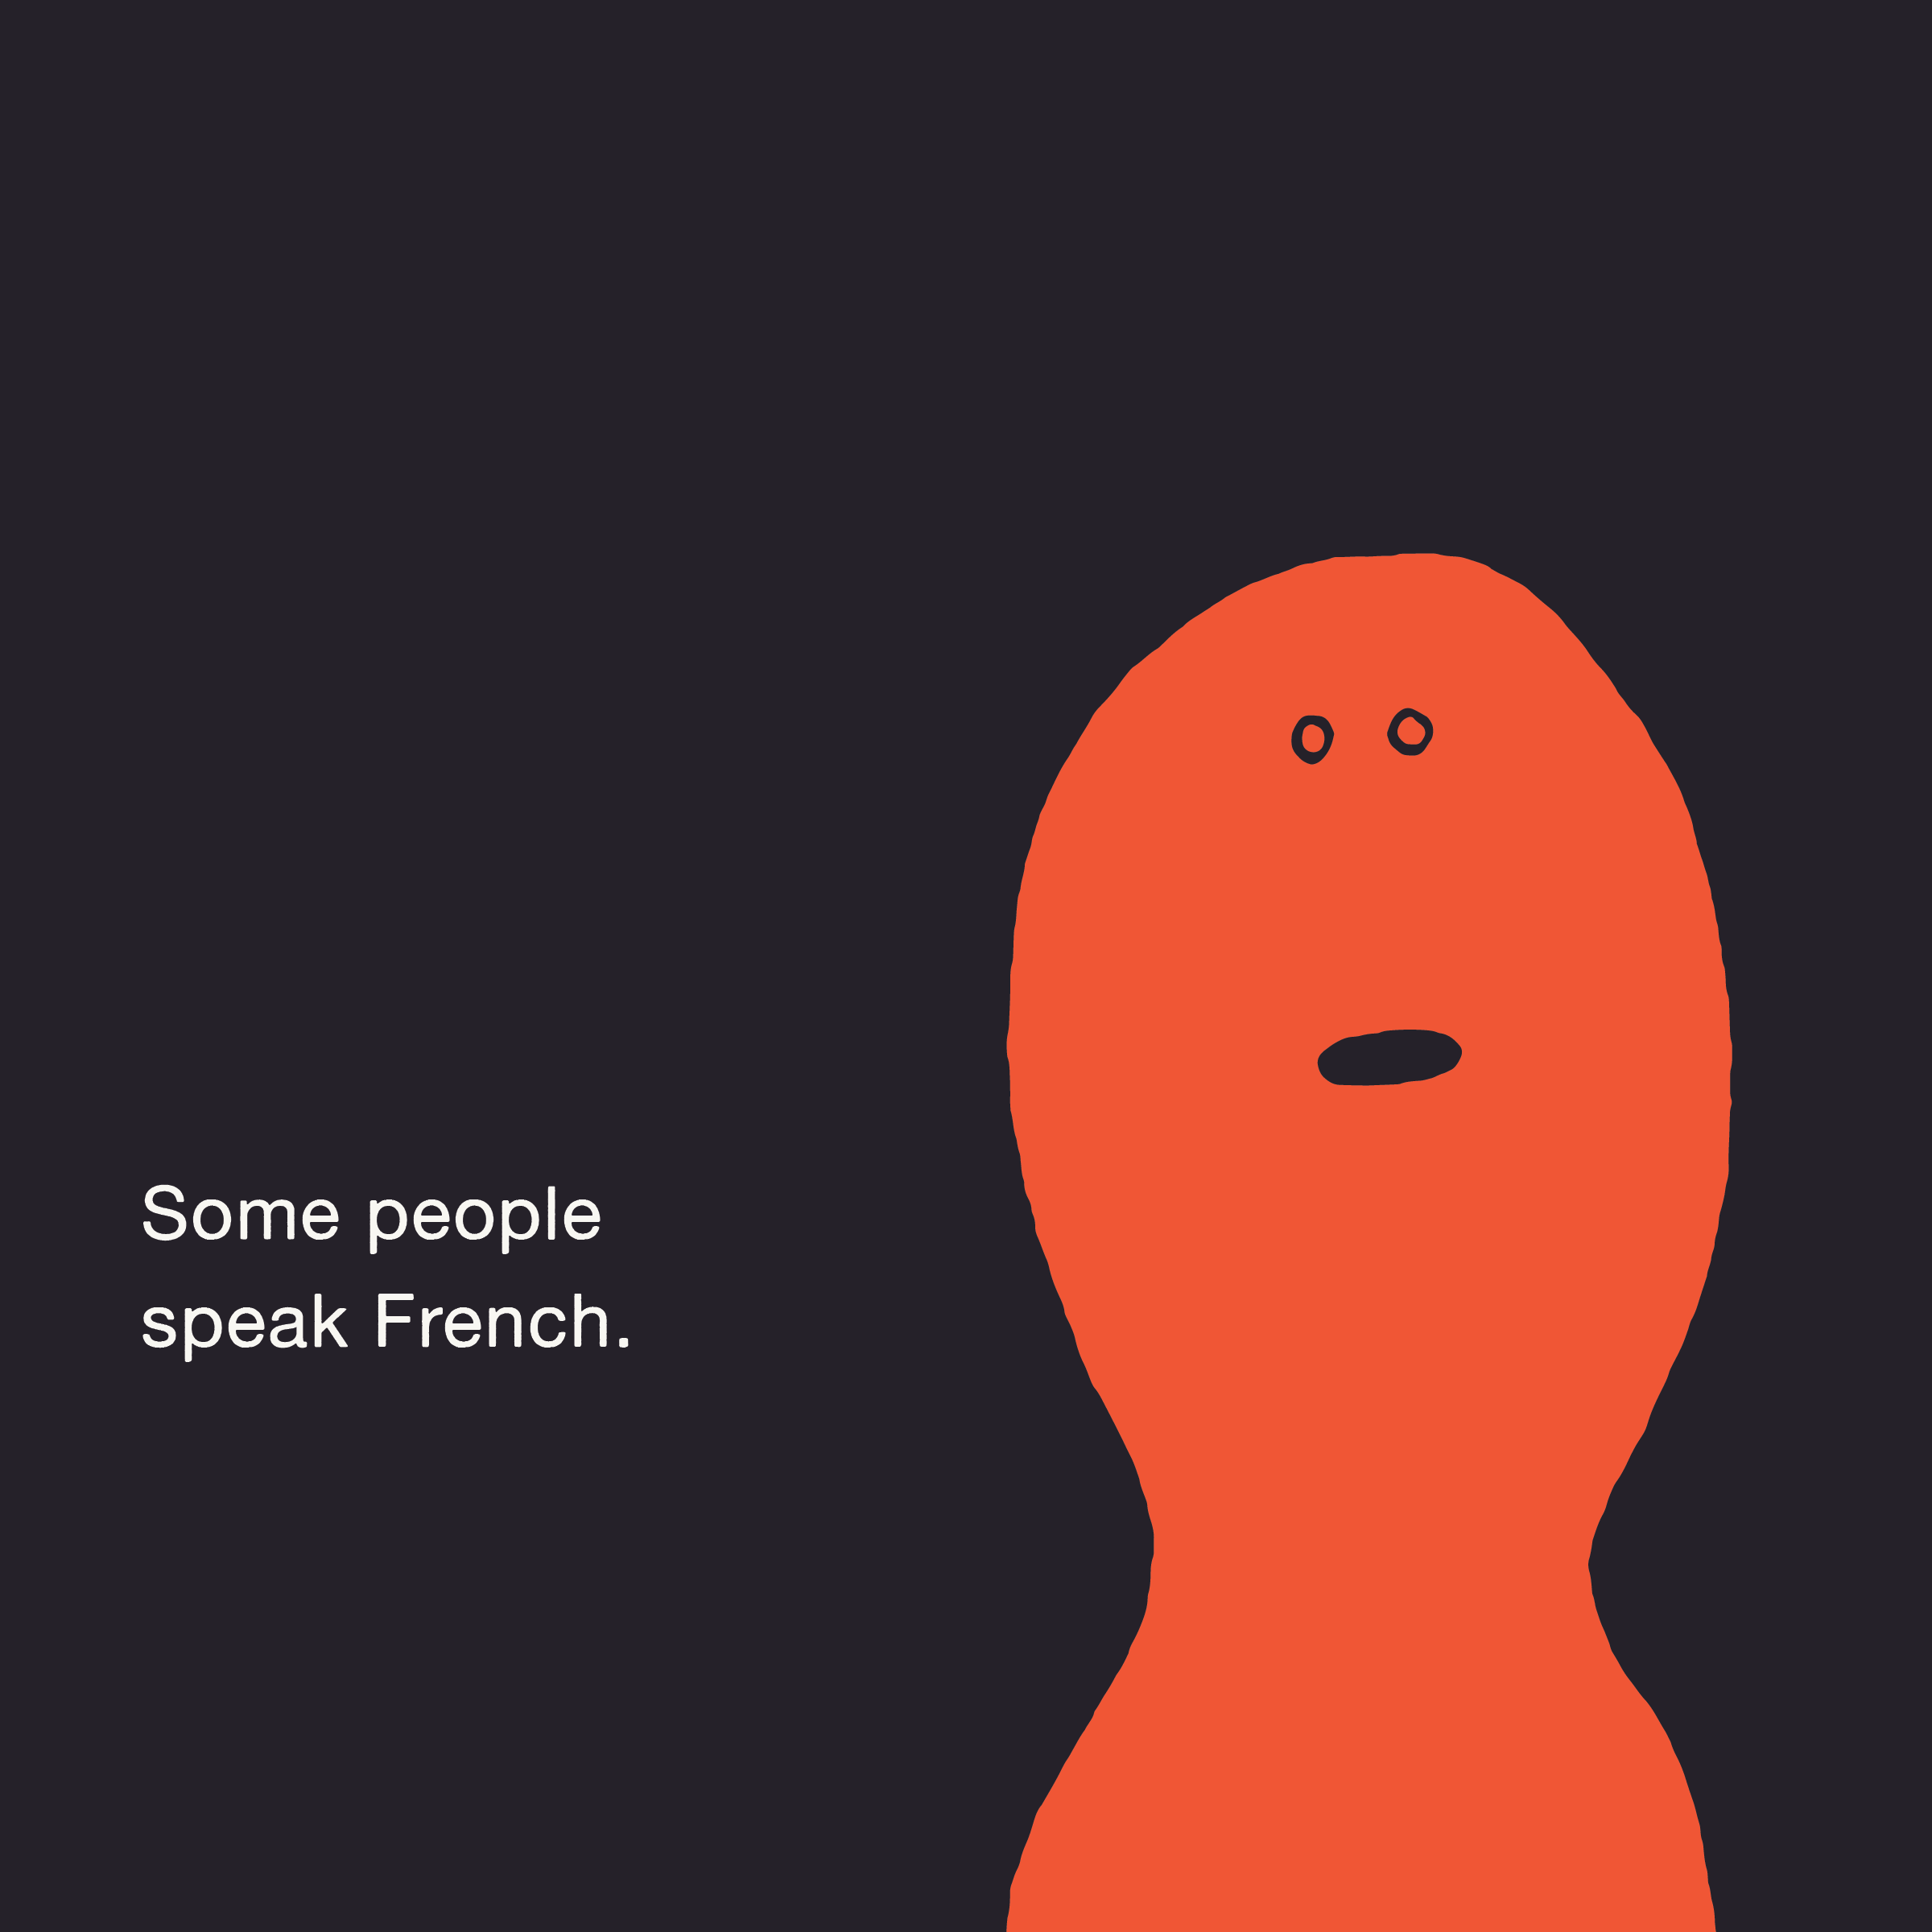 We_Are_Some_People-86-CDR.png